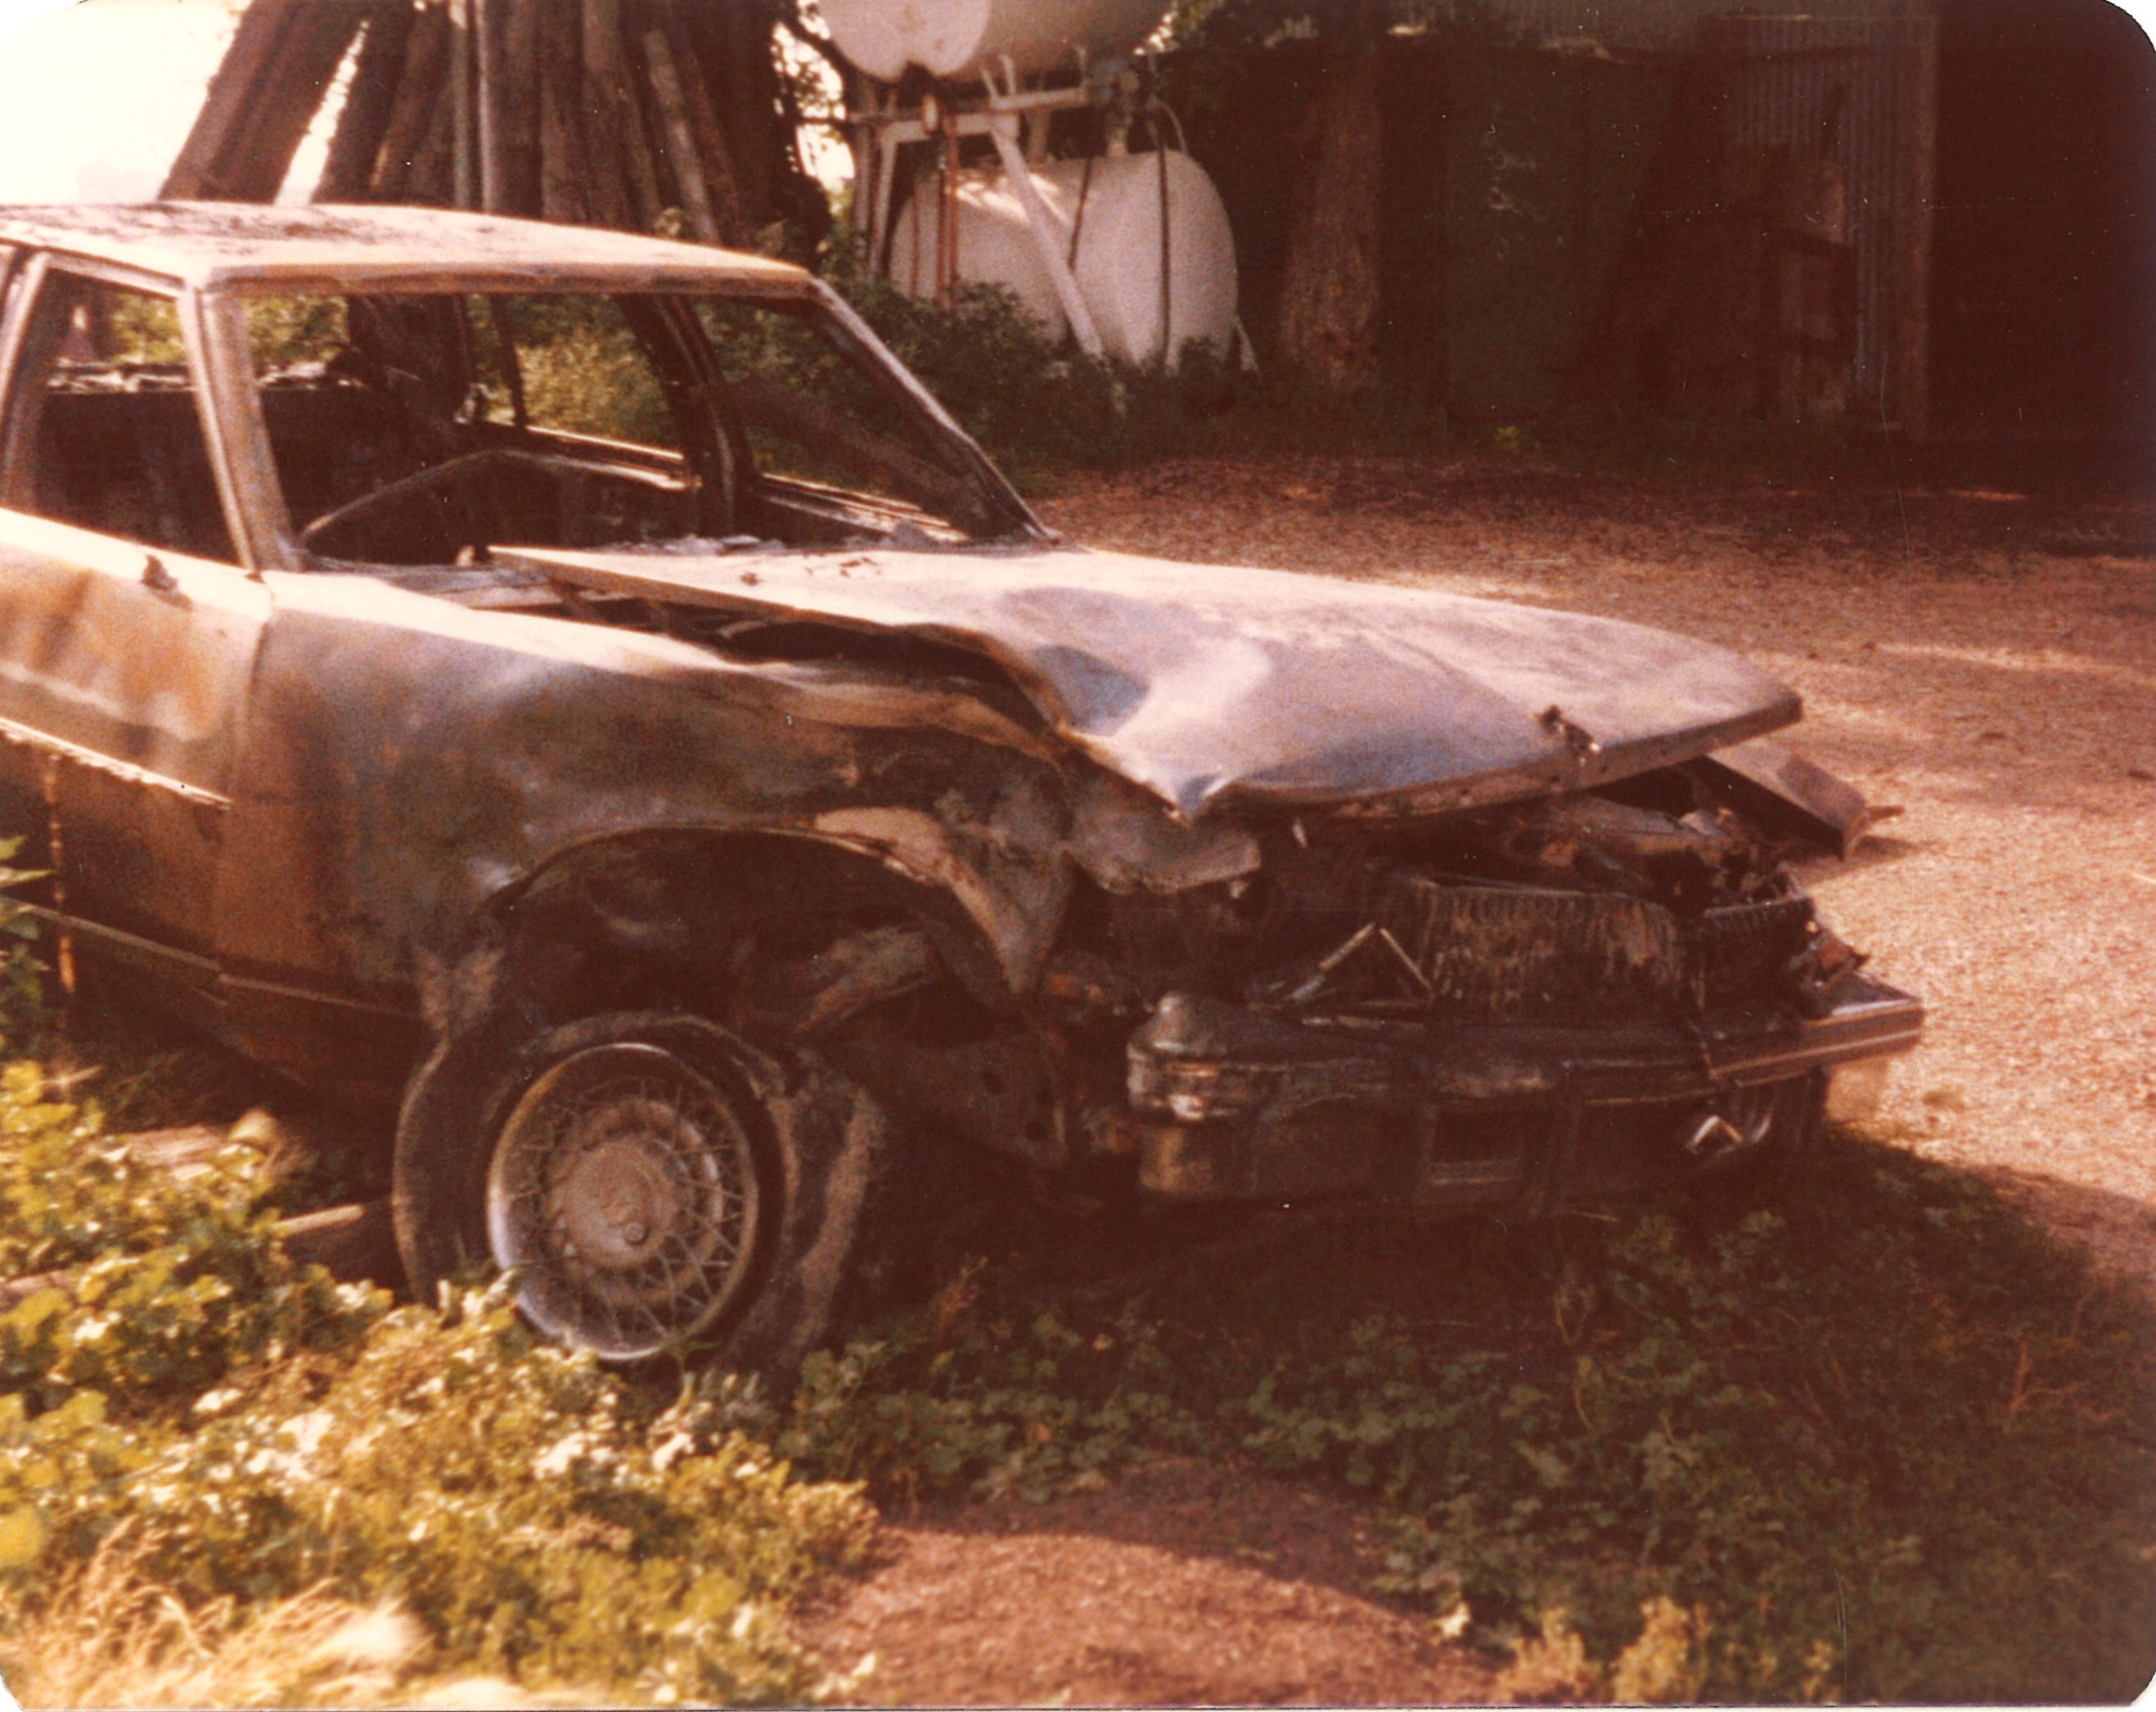 Burned Cadillac Seville front right July1979